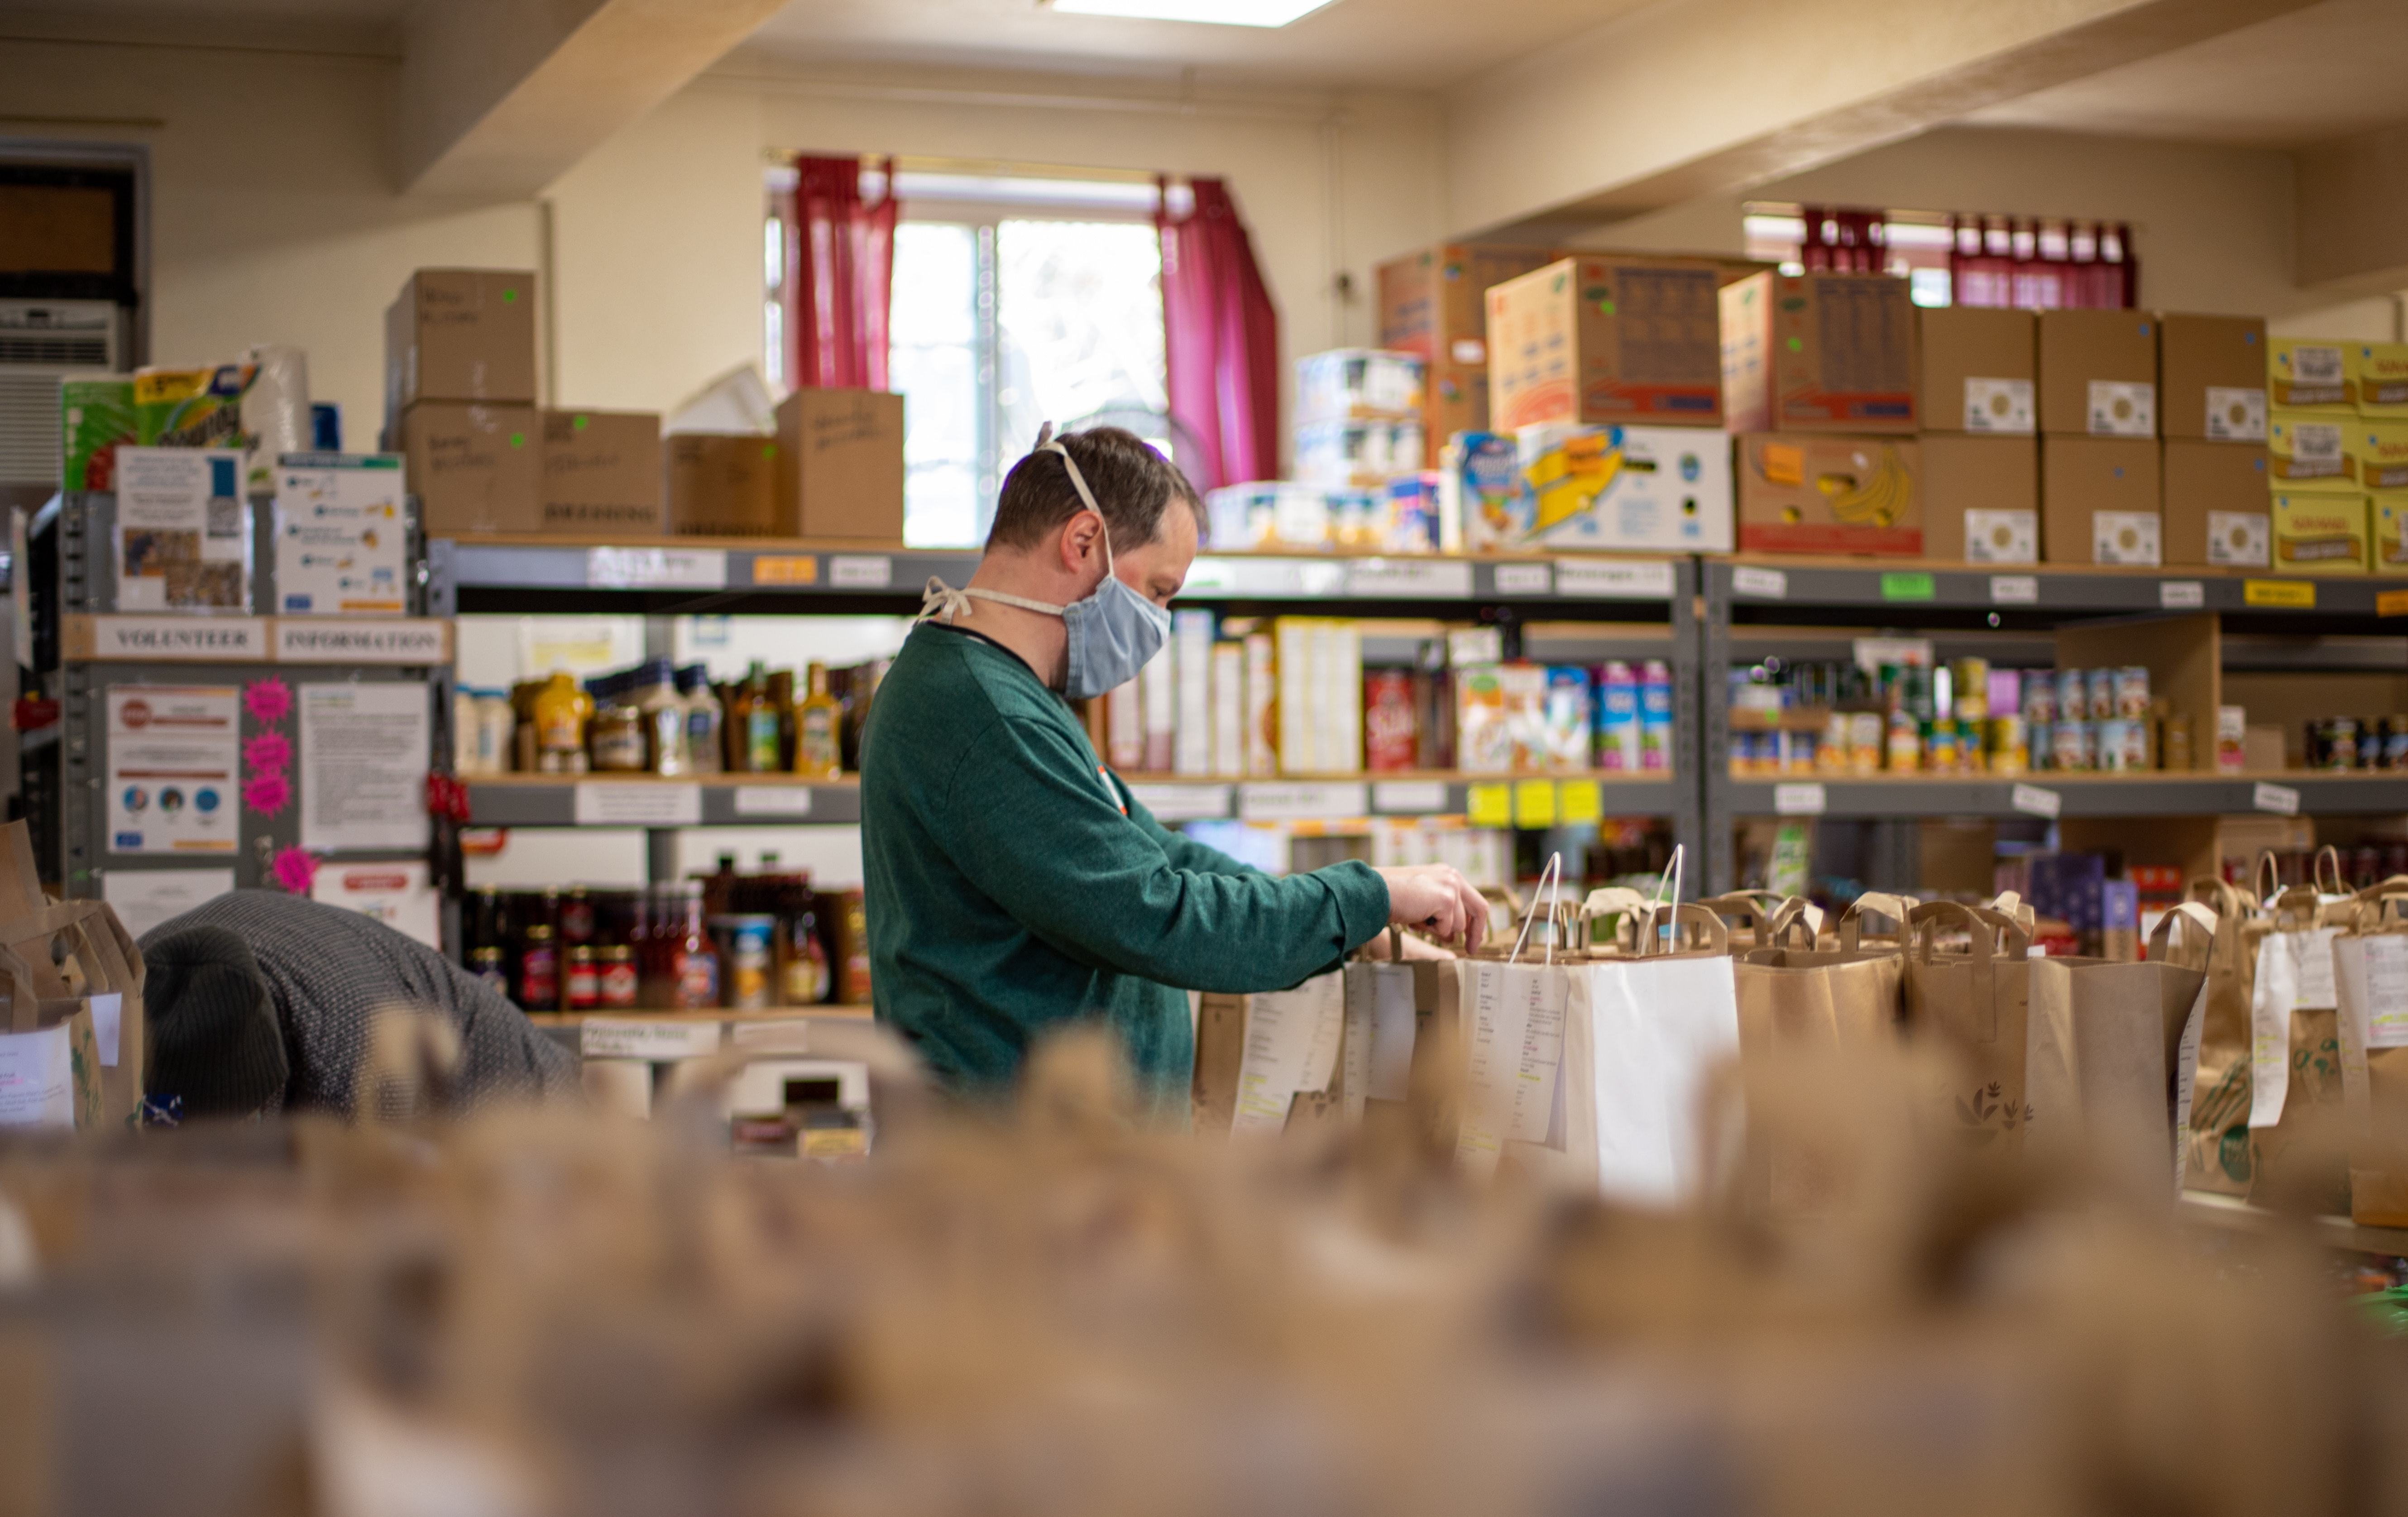 The future of work? People are giving up their jobs to volunteer in local food bank